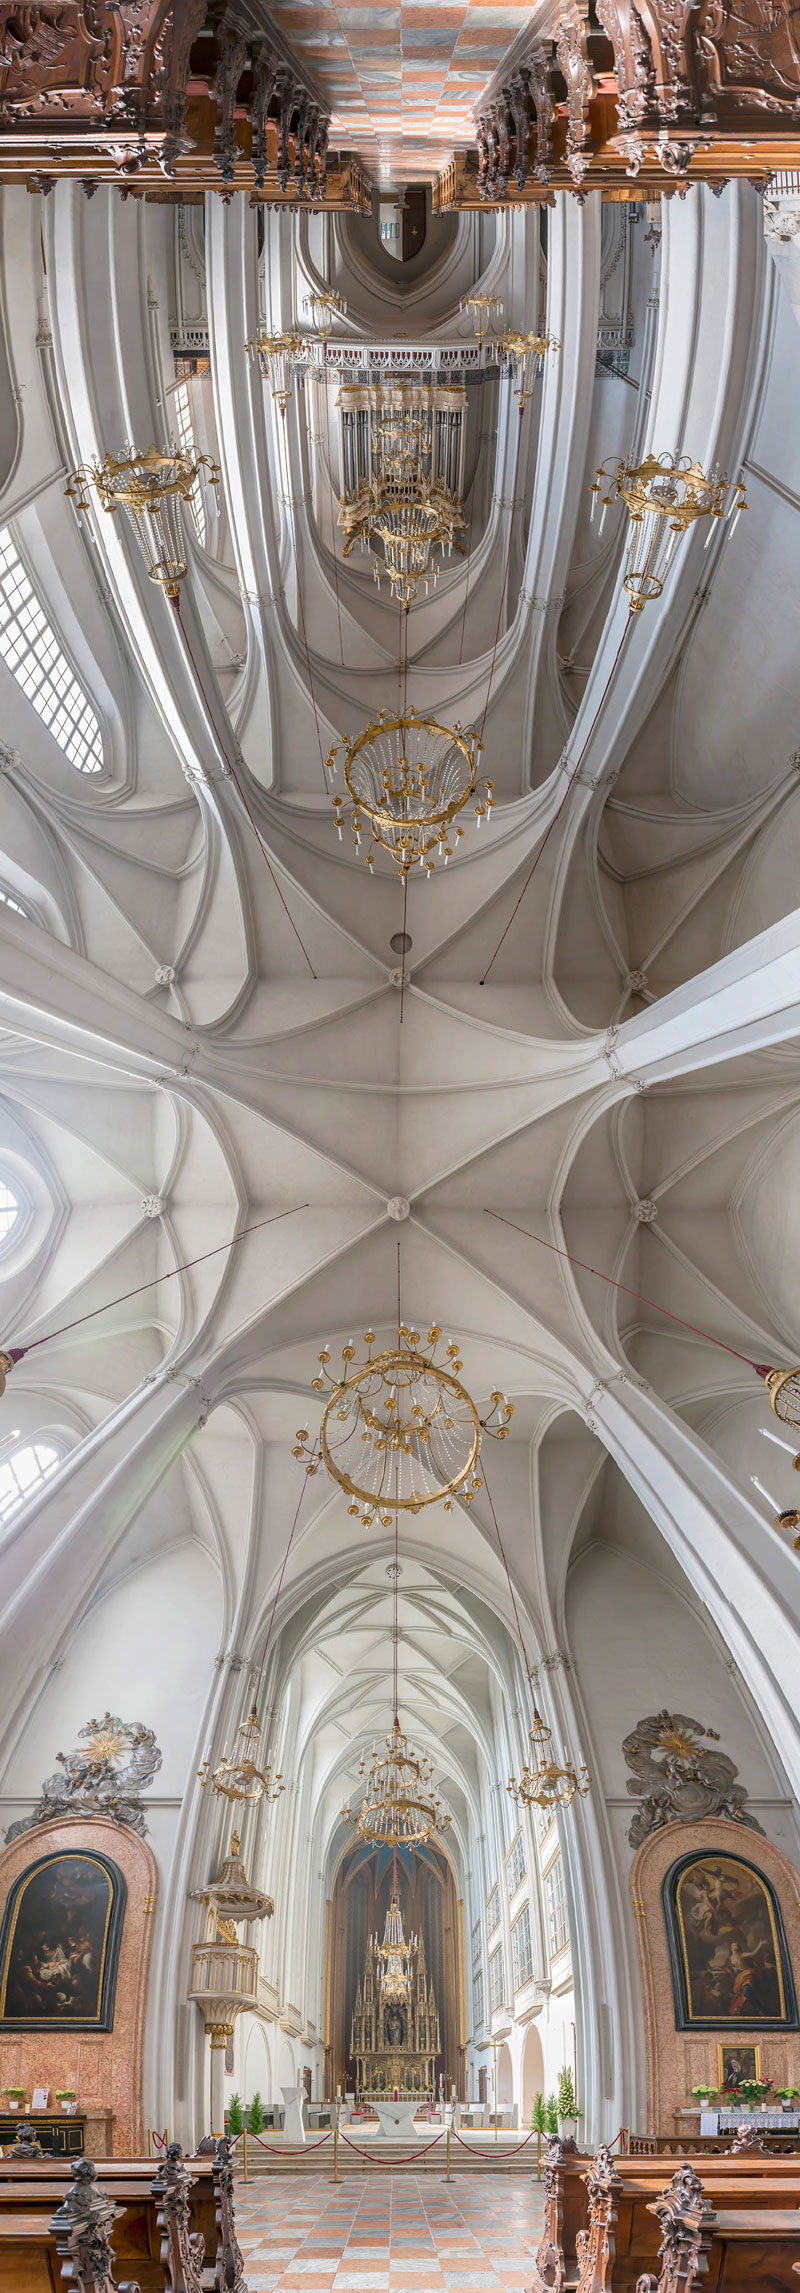 Vertical Panoramas of Church Ceilings Around the World (1)